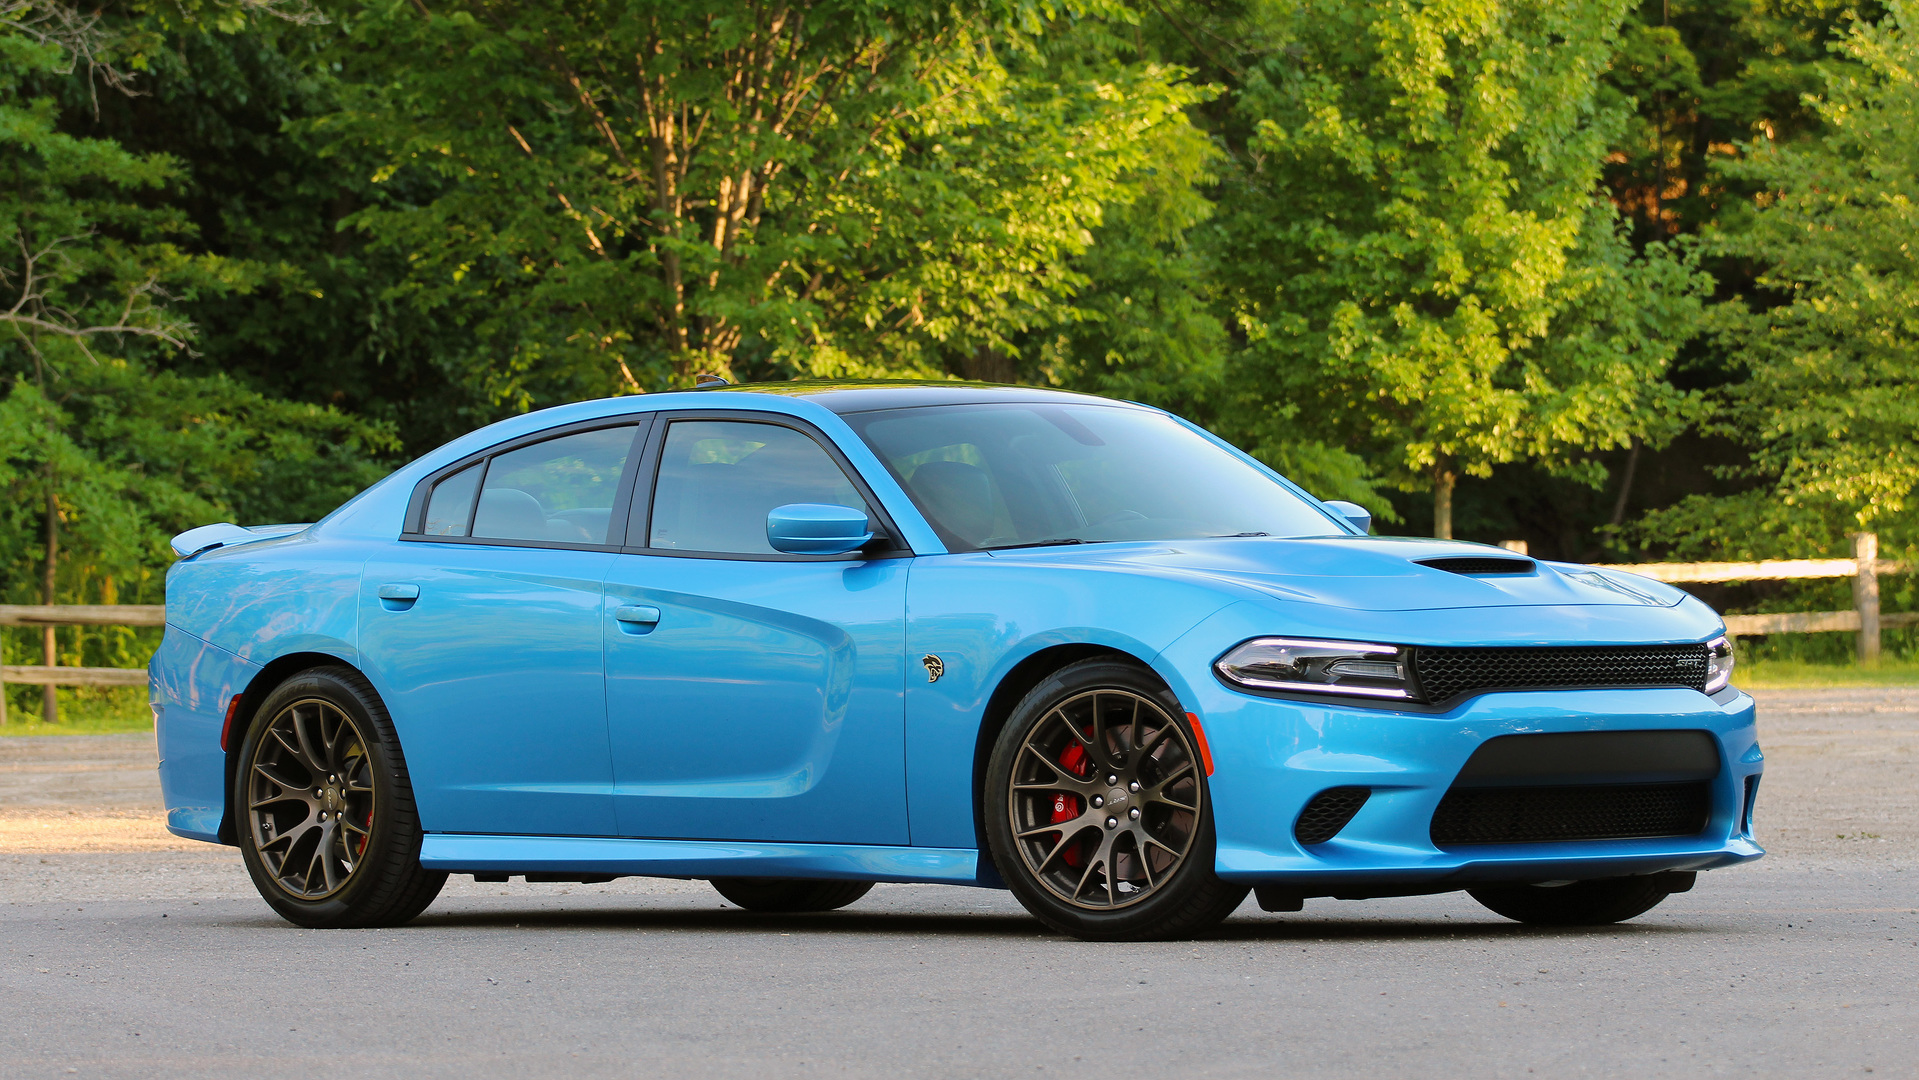 2 Door Charger Release Date >> 2019 Dodge Srt Charger | 2018 Dodge Reviews